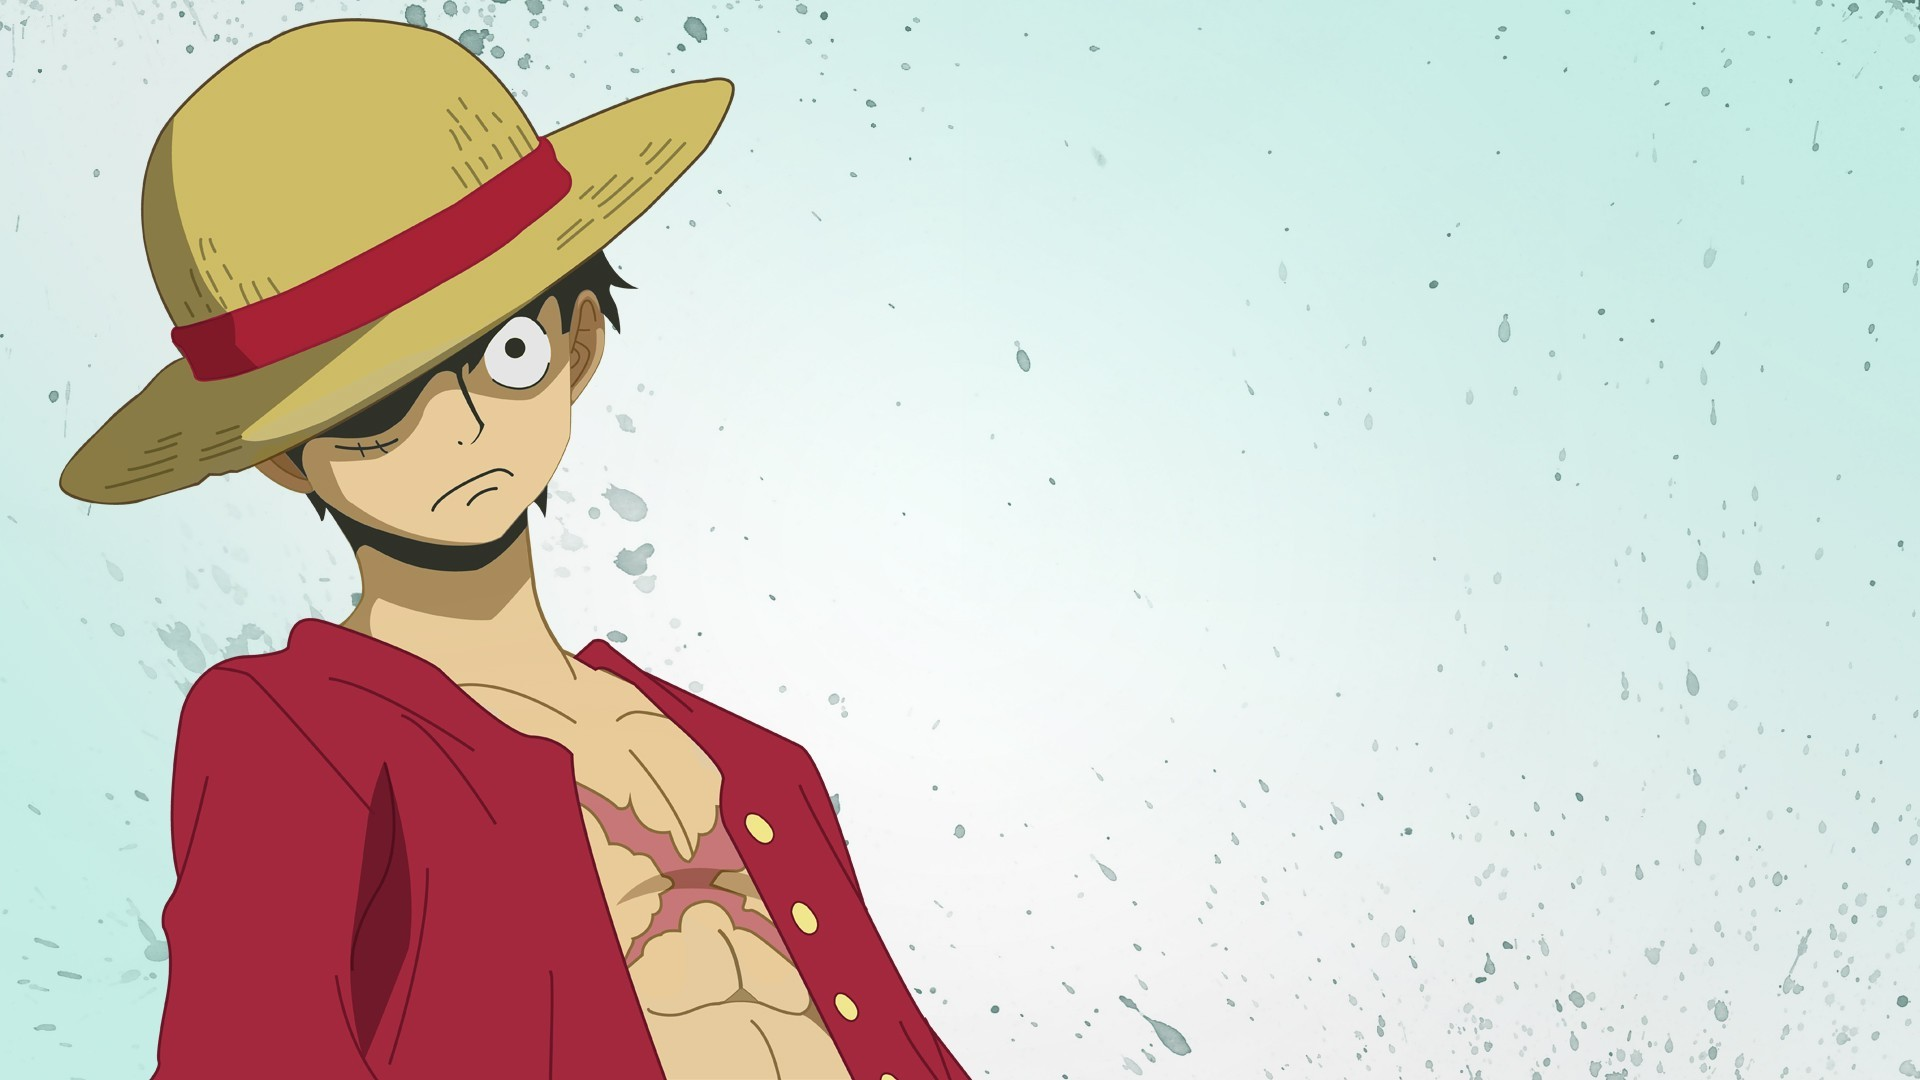 Download One Piece Luffy Wallpaper High Res 5808 Wallpaper